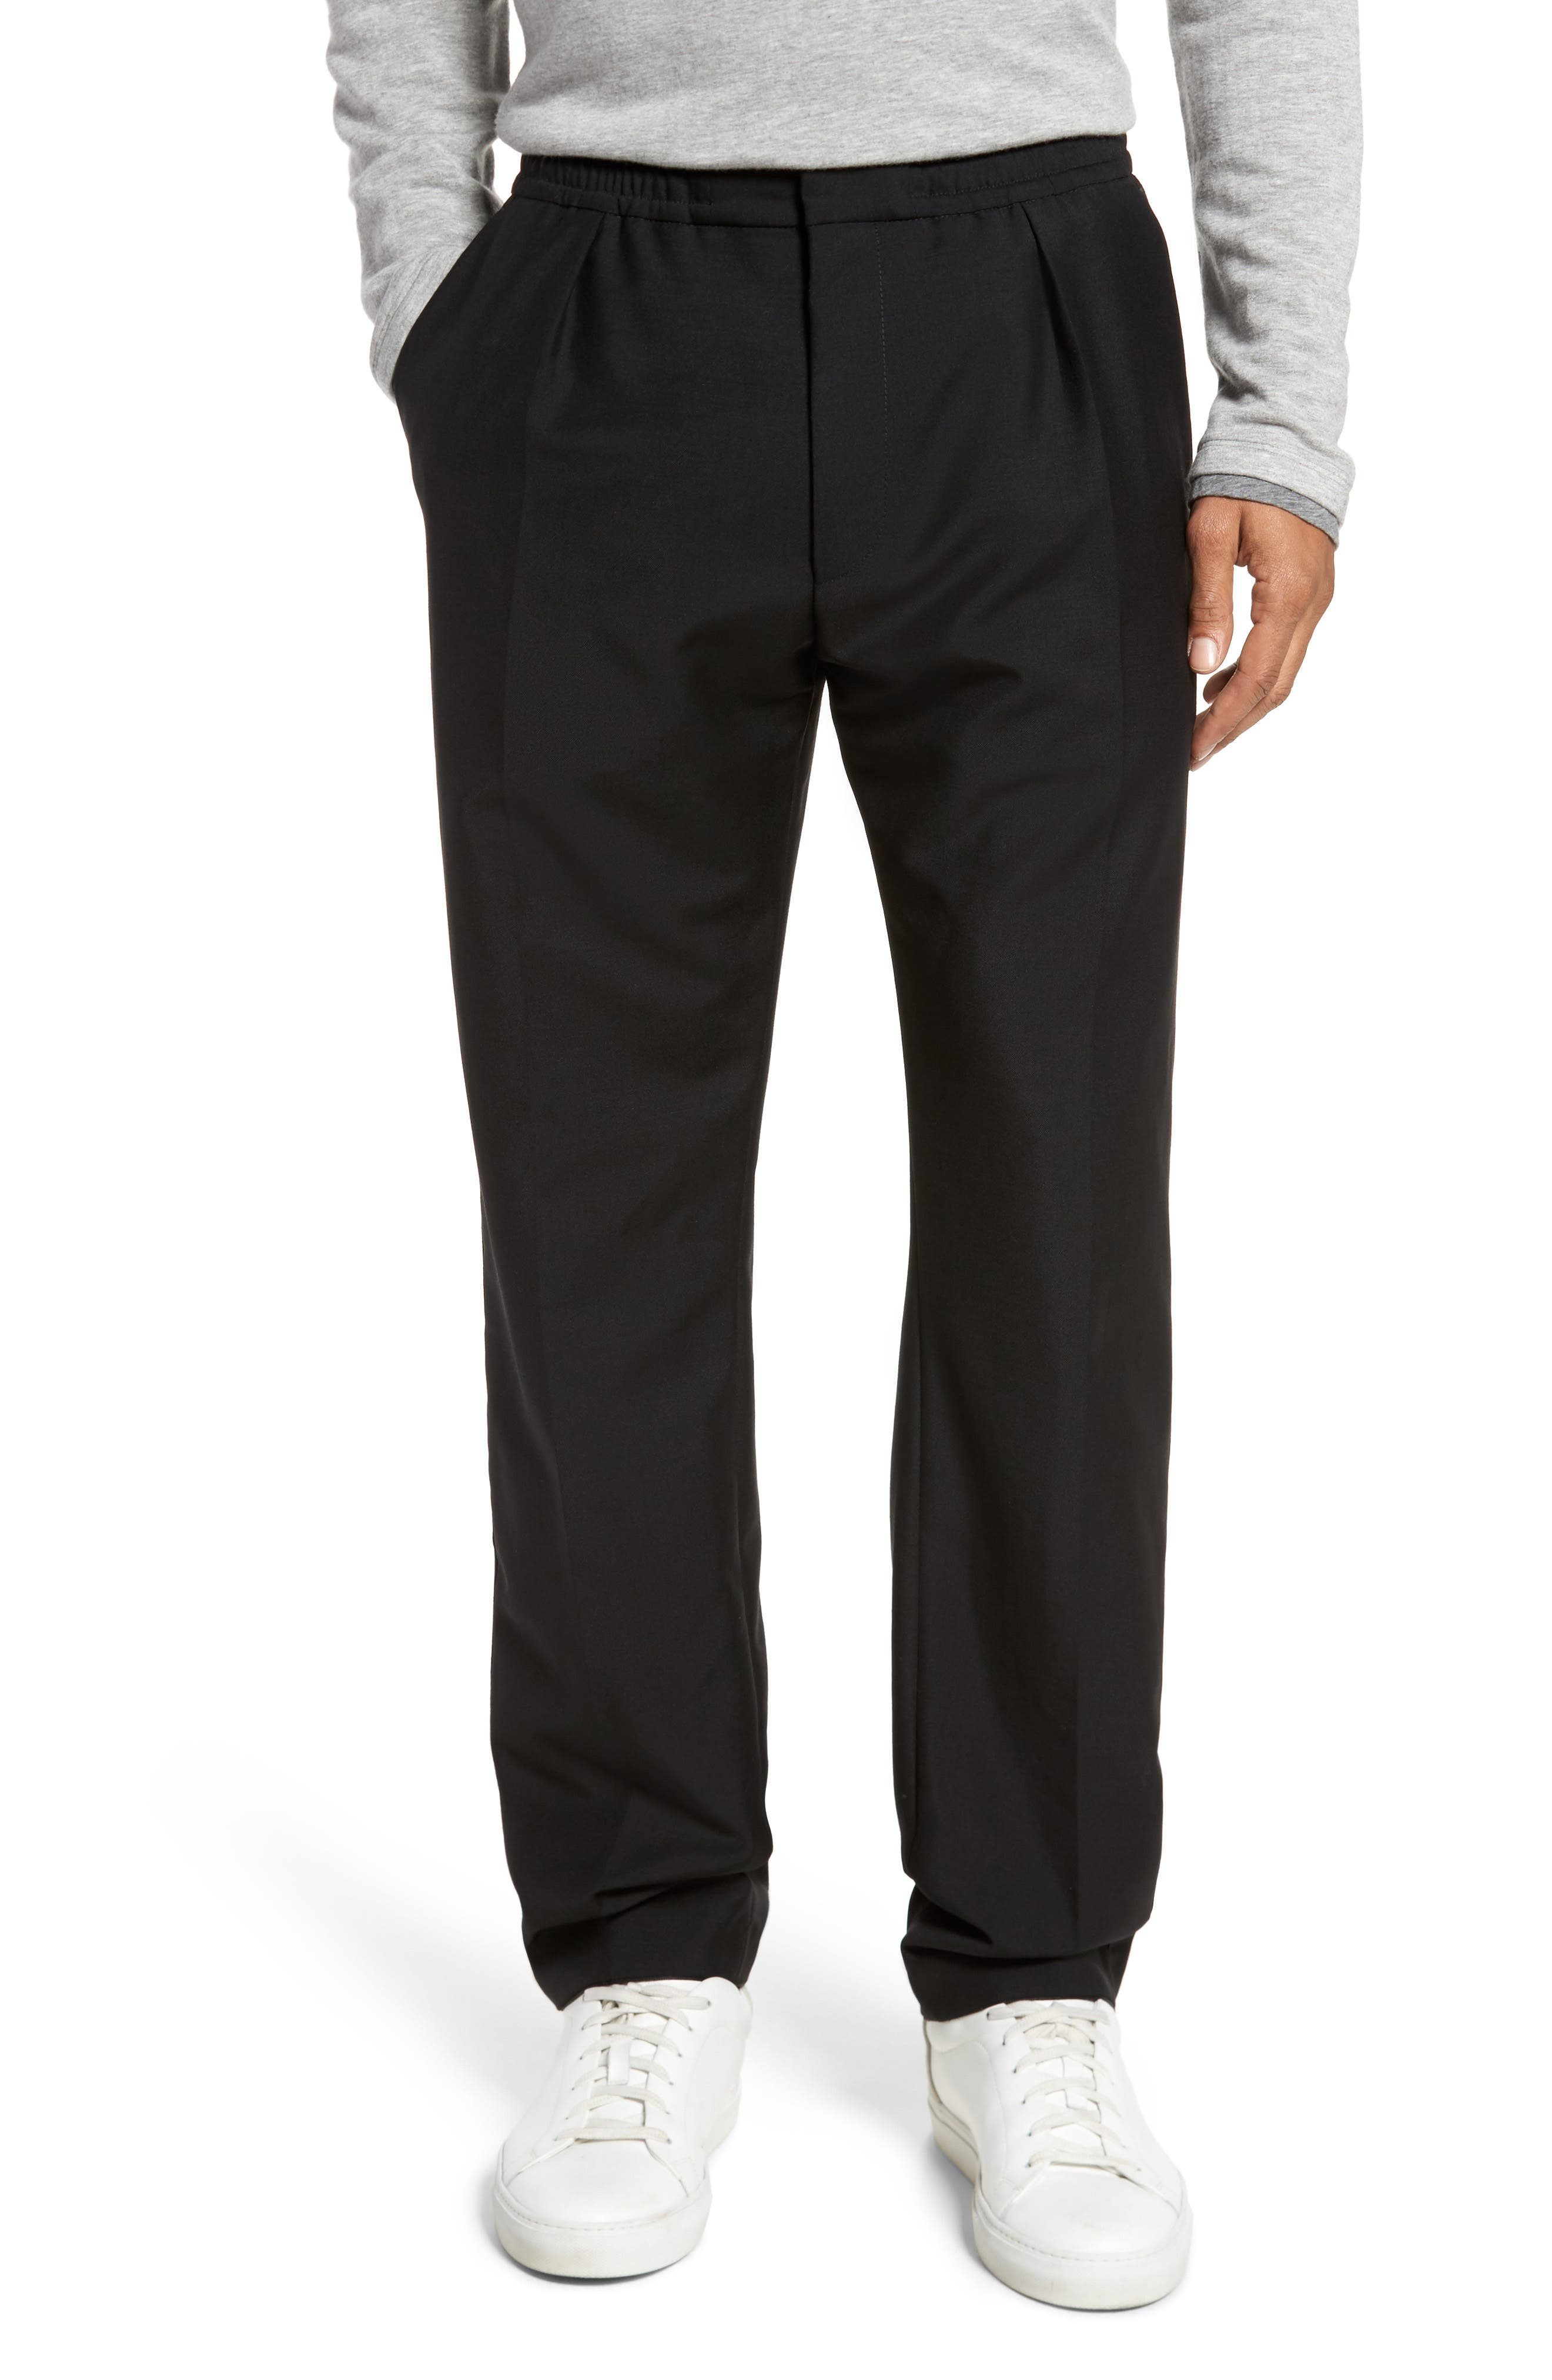 Payton Pleated Solid Wool & Mohair Jogger Trousers,                         Main,                         color, 001